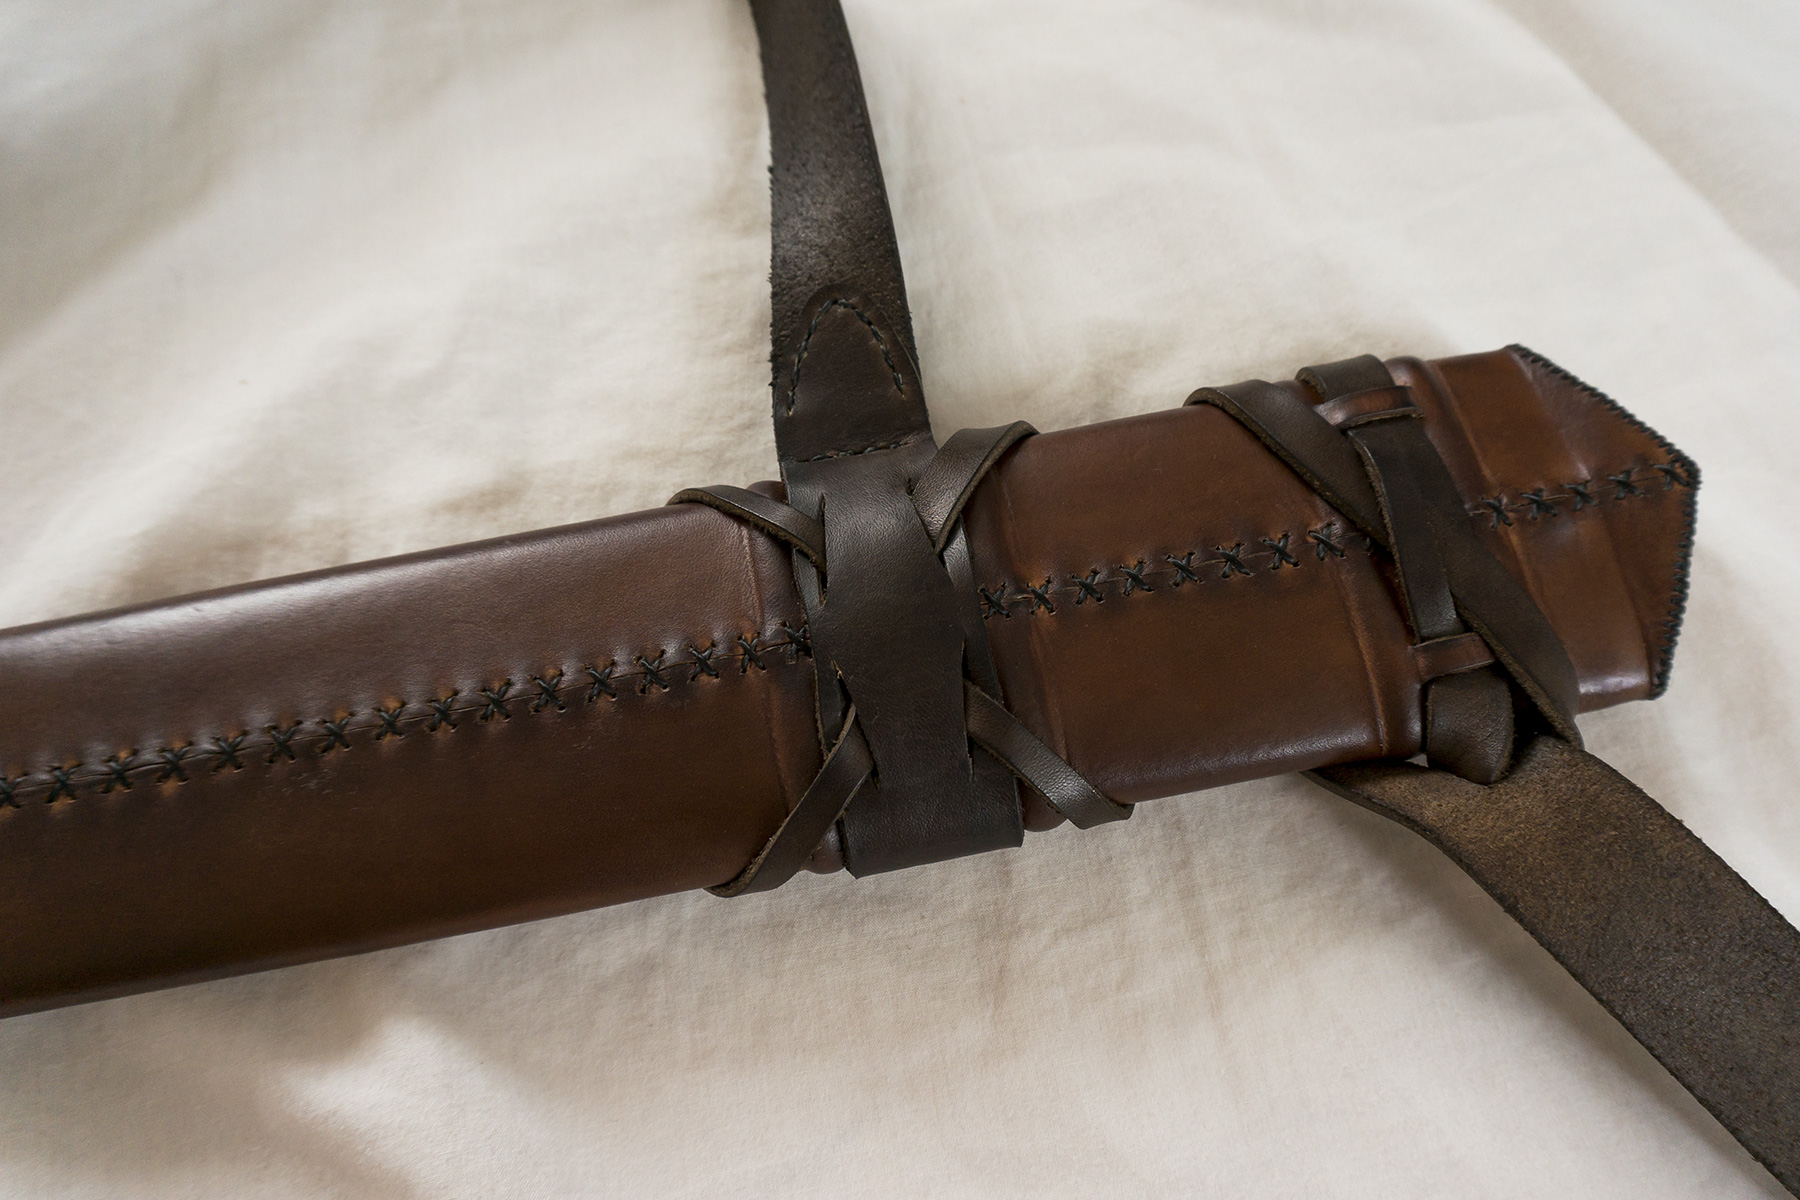 leatherwork leather woodwork wood ash medieval sword scabbard stitching sewing handmade